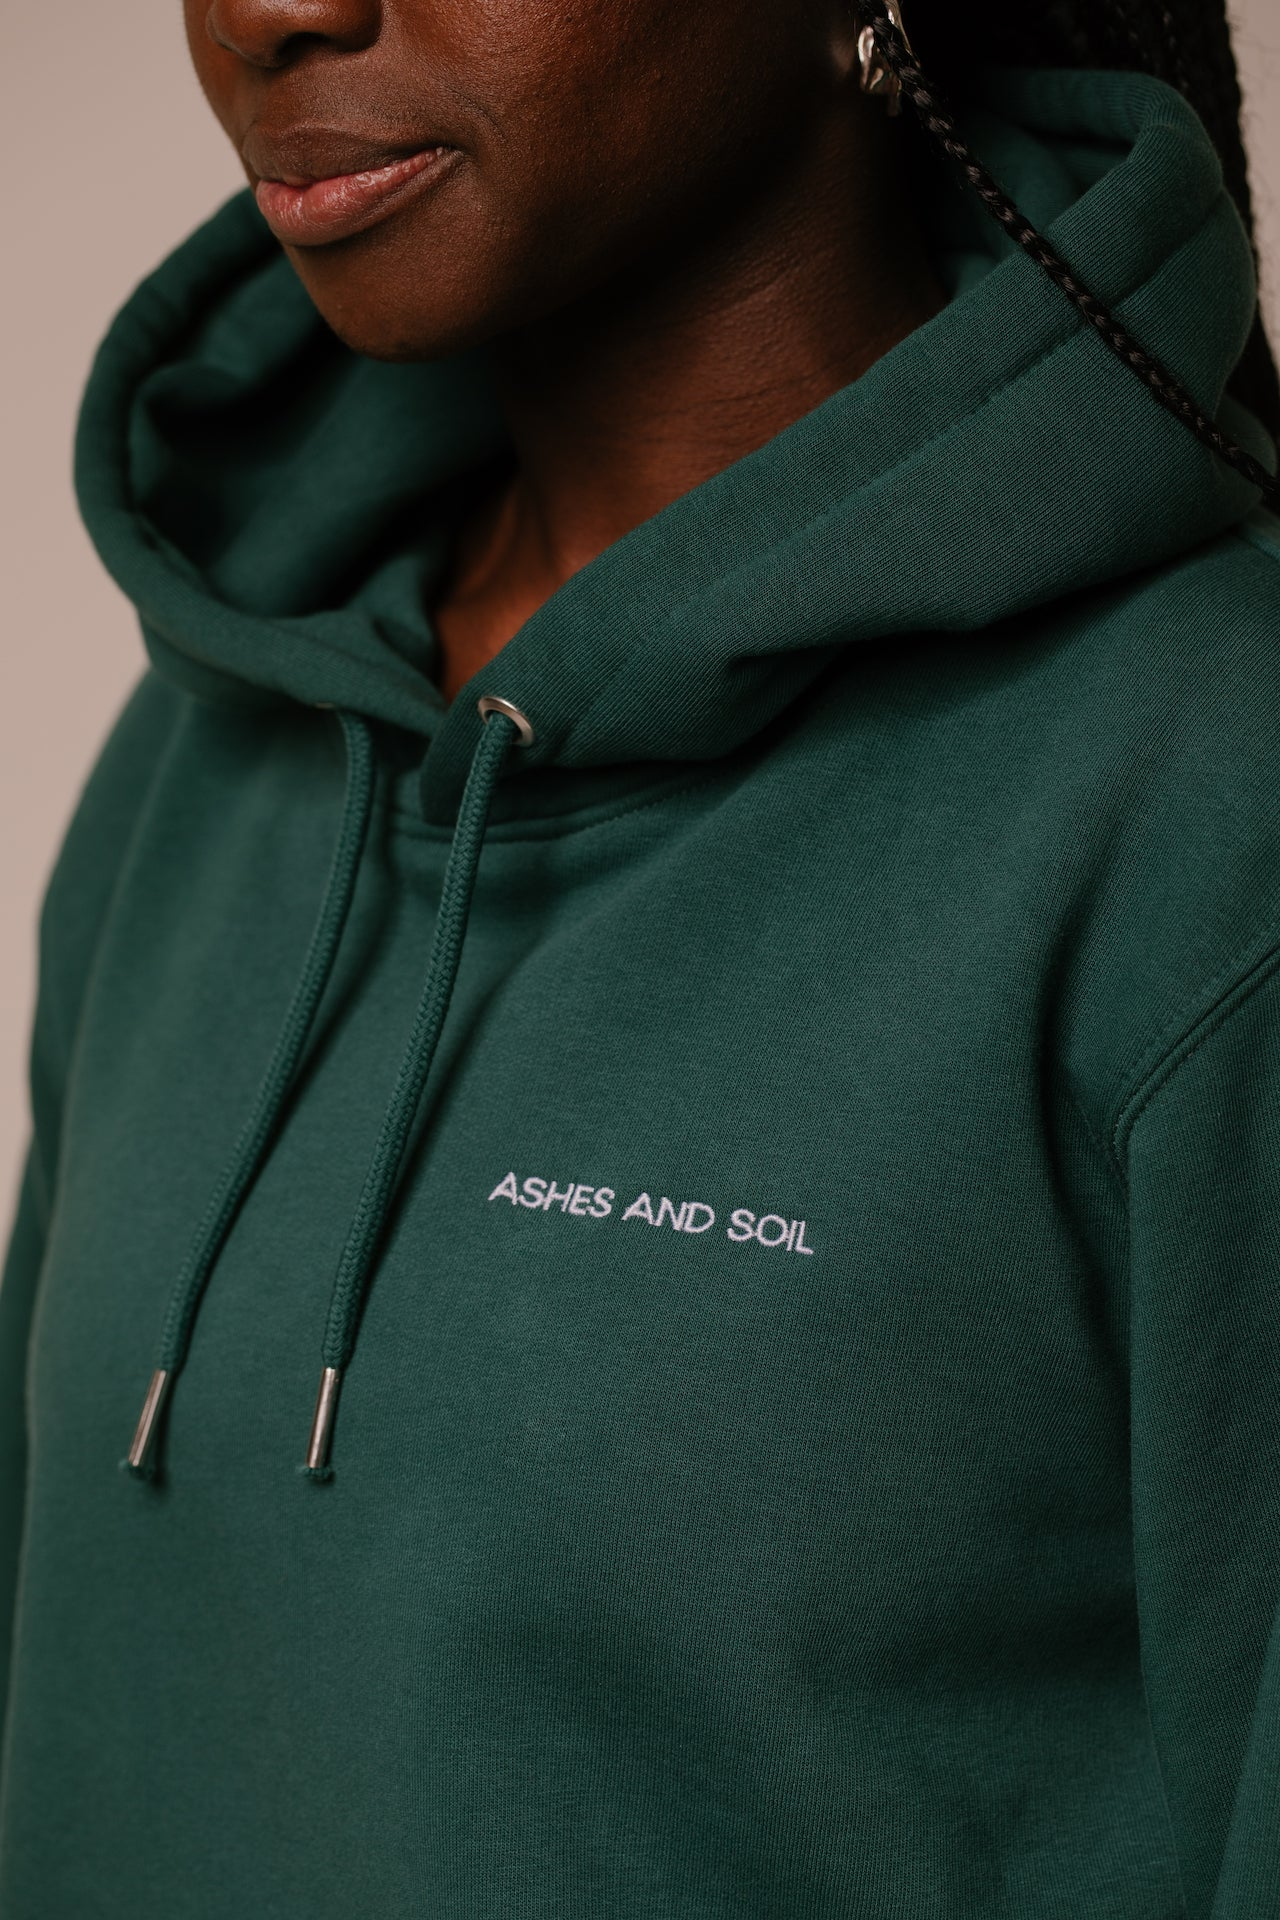 The unisex hoodie by ASHES AND SOIL is 85% combed ring-spun organic cotton and 15% recycled polyester. It has set-in sleeves, a hoodie with contrasting lining, a round cord of the same color, metal cord ends, and is roughened inside. The hoodie has a loose fit. For a complete oversize look, we recommend choosing one size bigger.